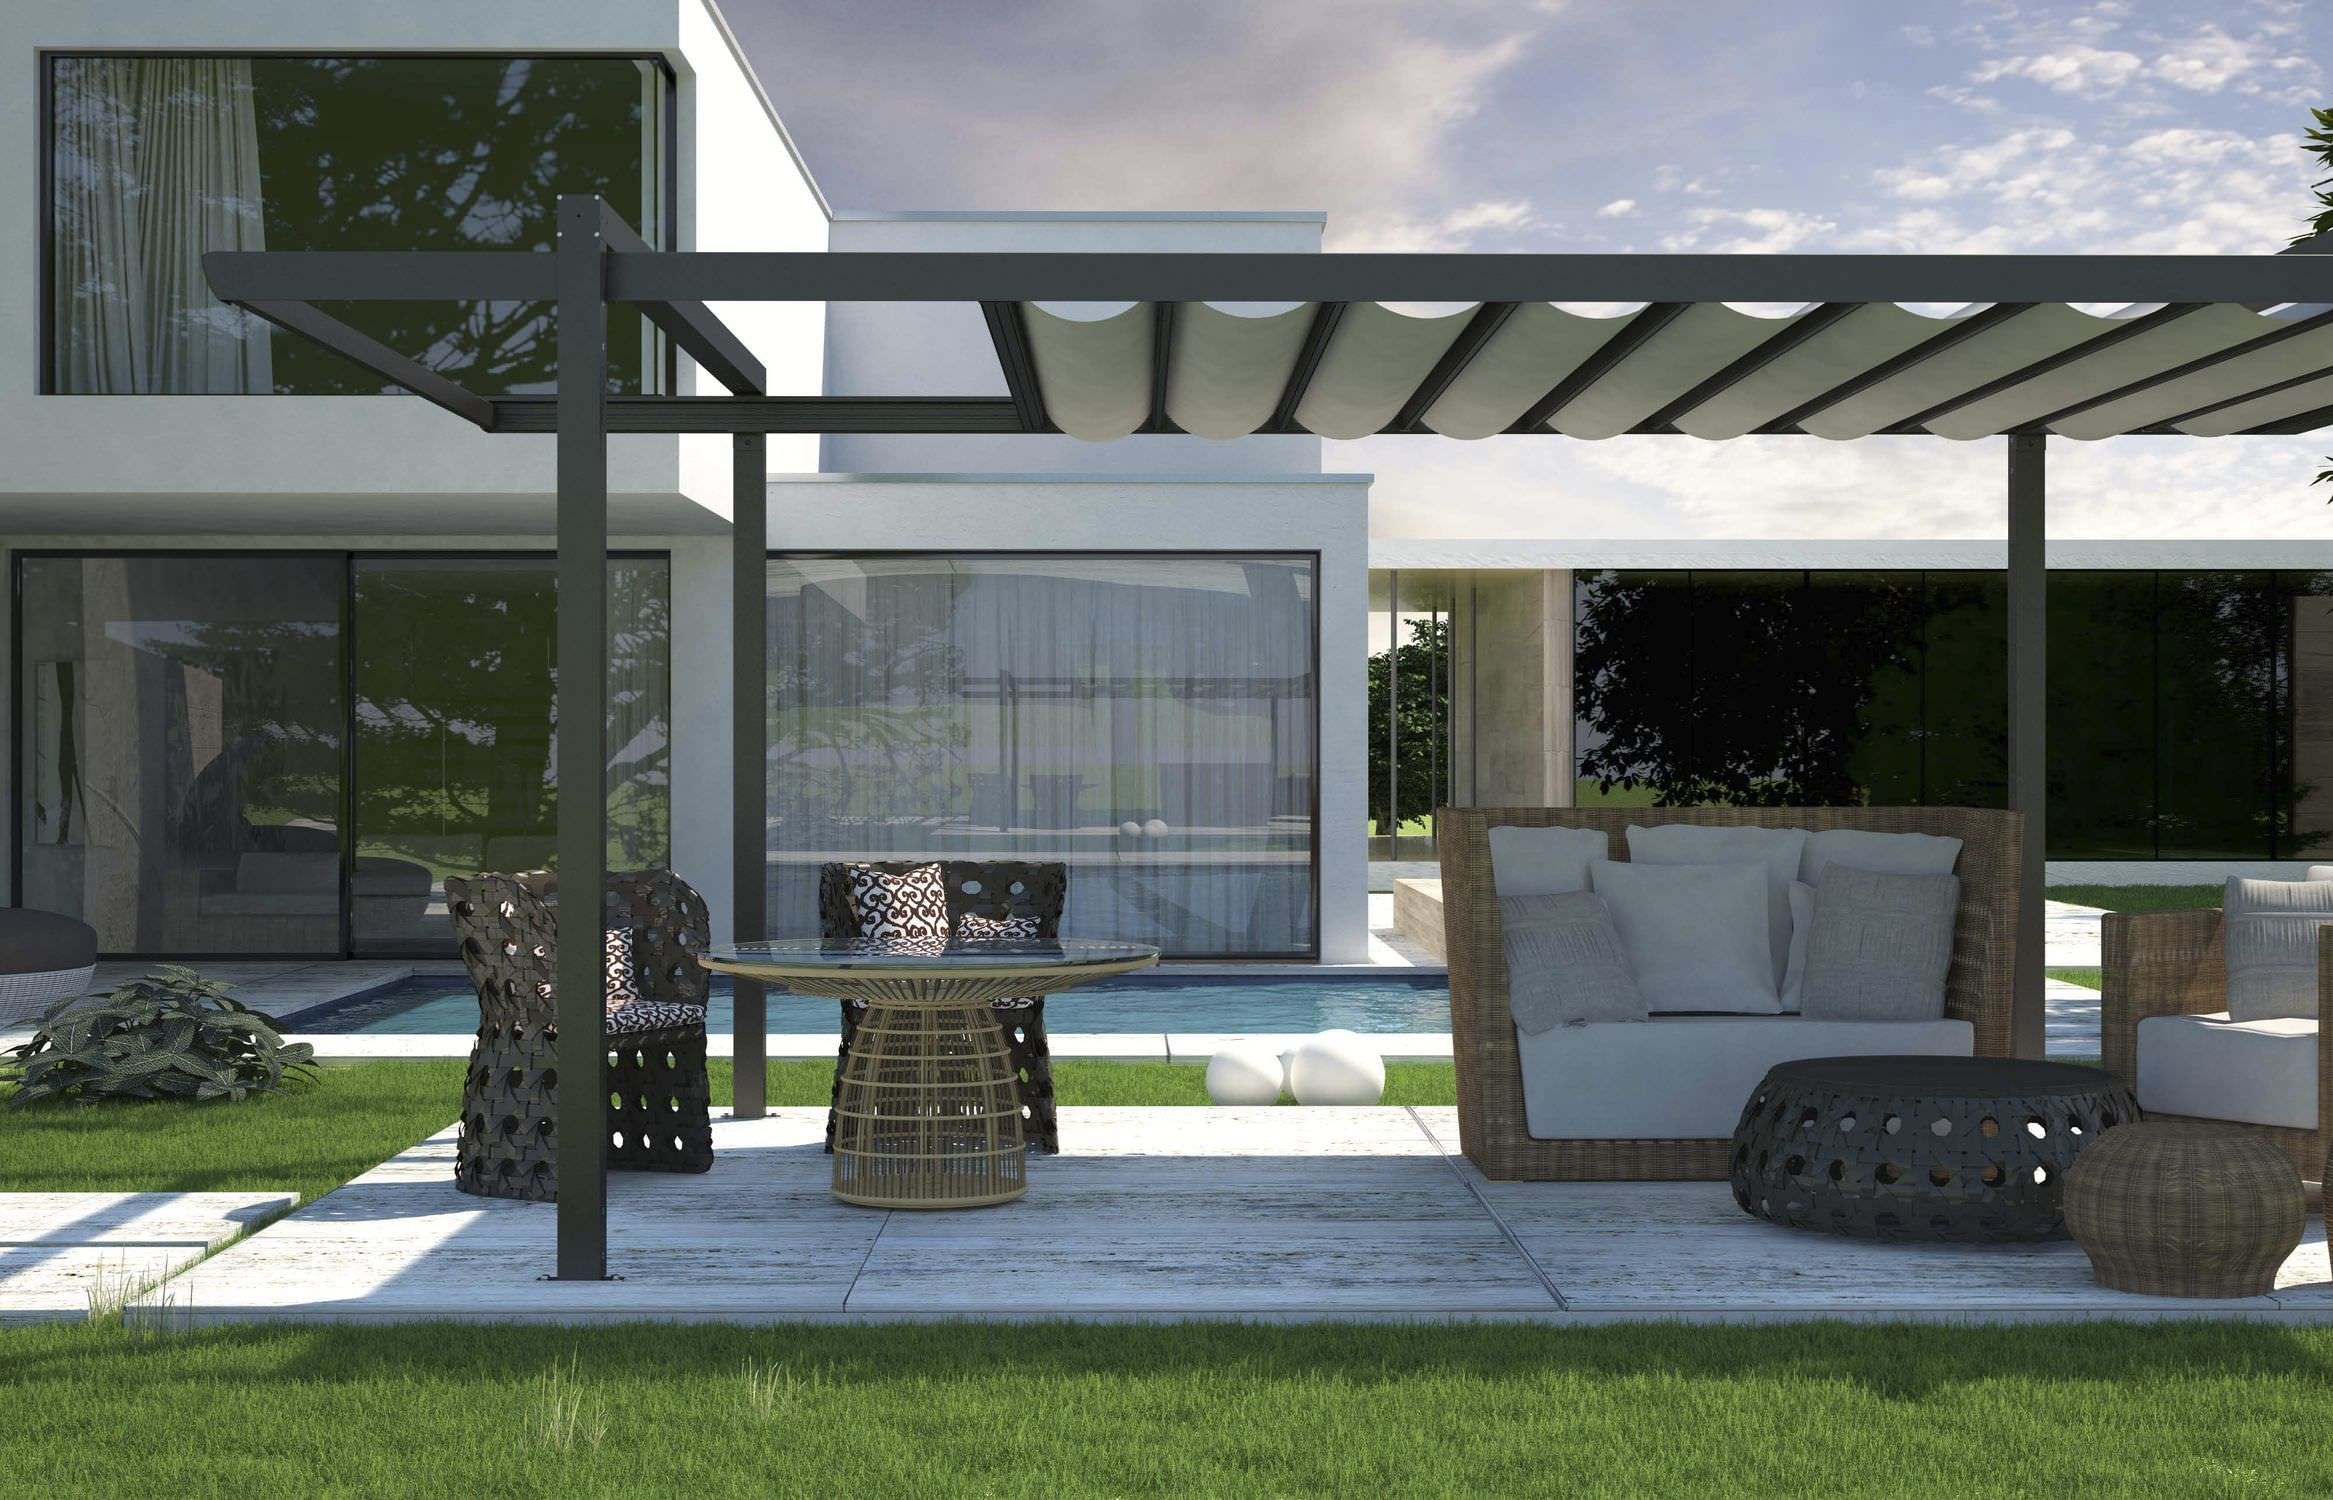 Self-supporting pergola / aluminium / PVC fabric sliding canopy - SINTESI SHADE - FRAMA ACTION